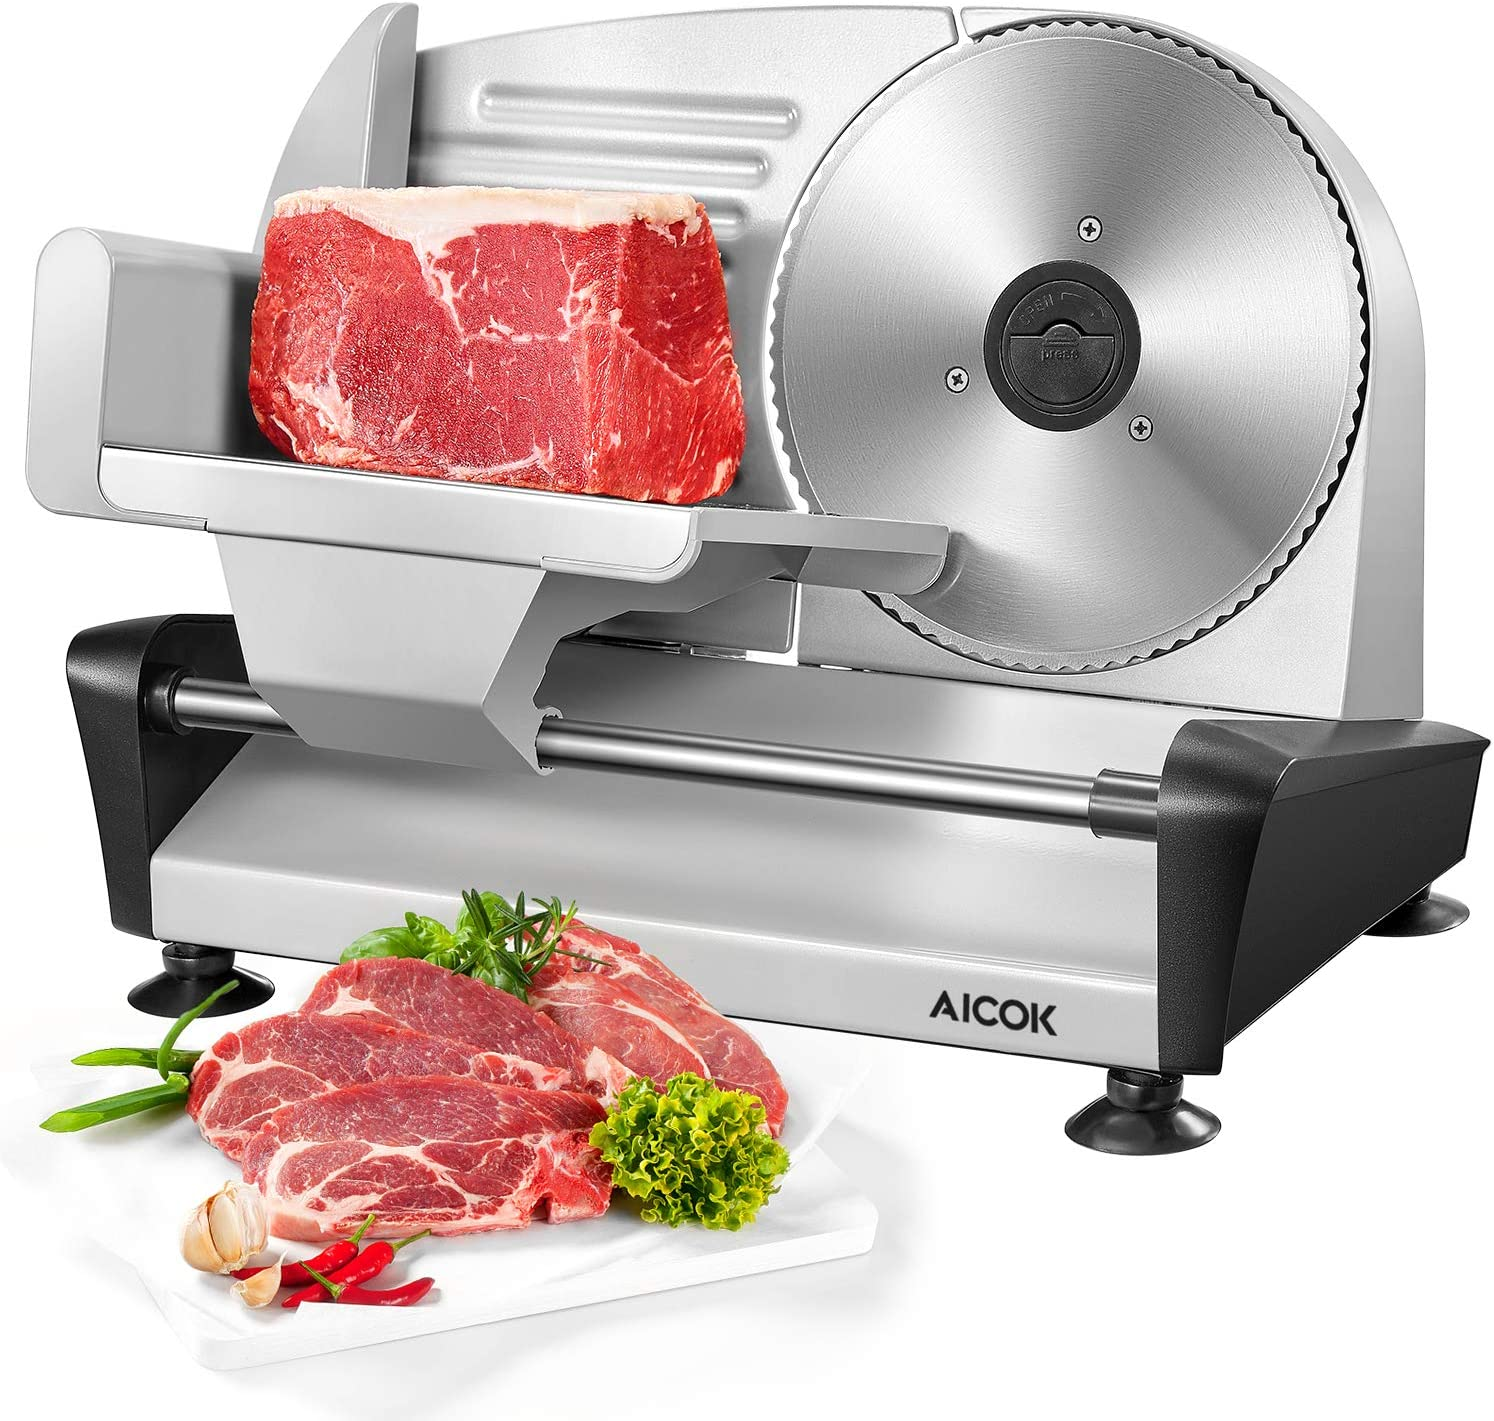 AICOK Meat Slicer Electric Deli & Food Slicer for Home Use, 7.5